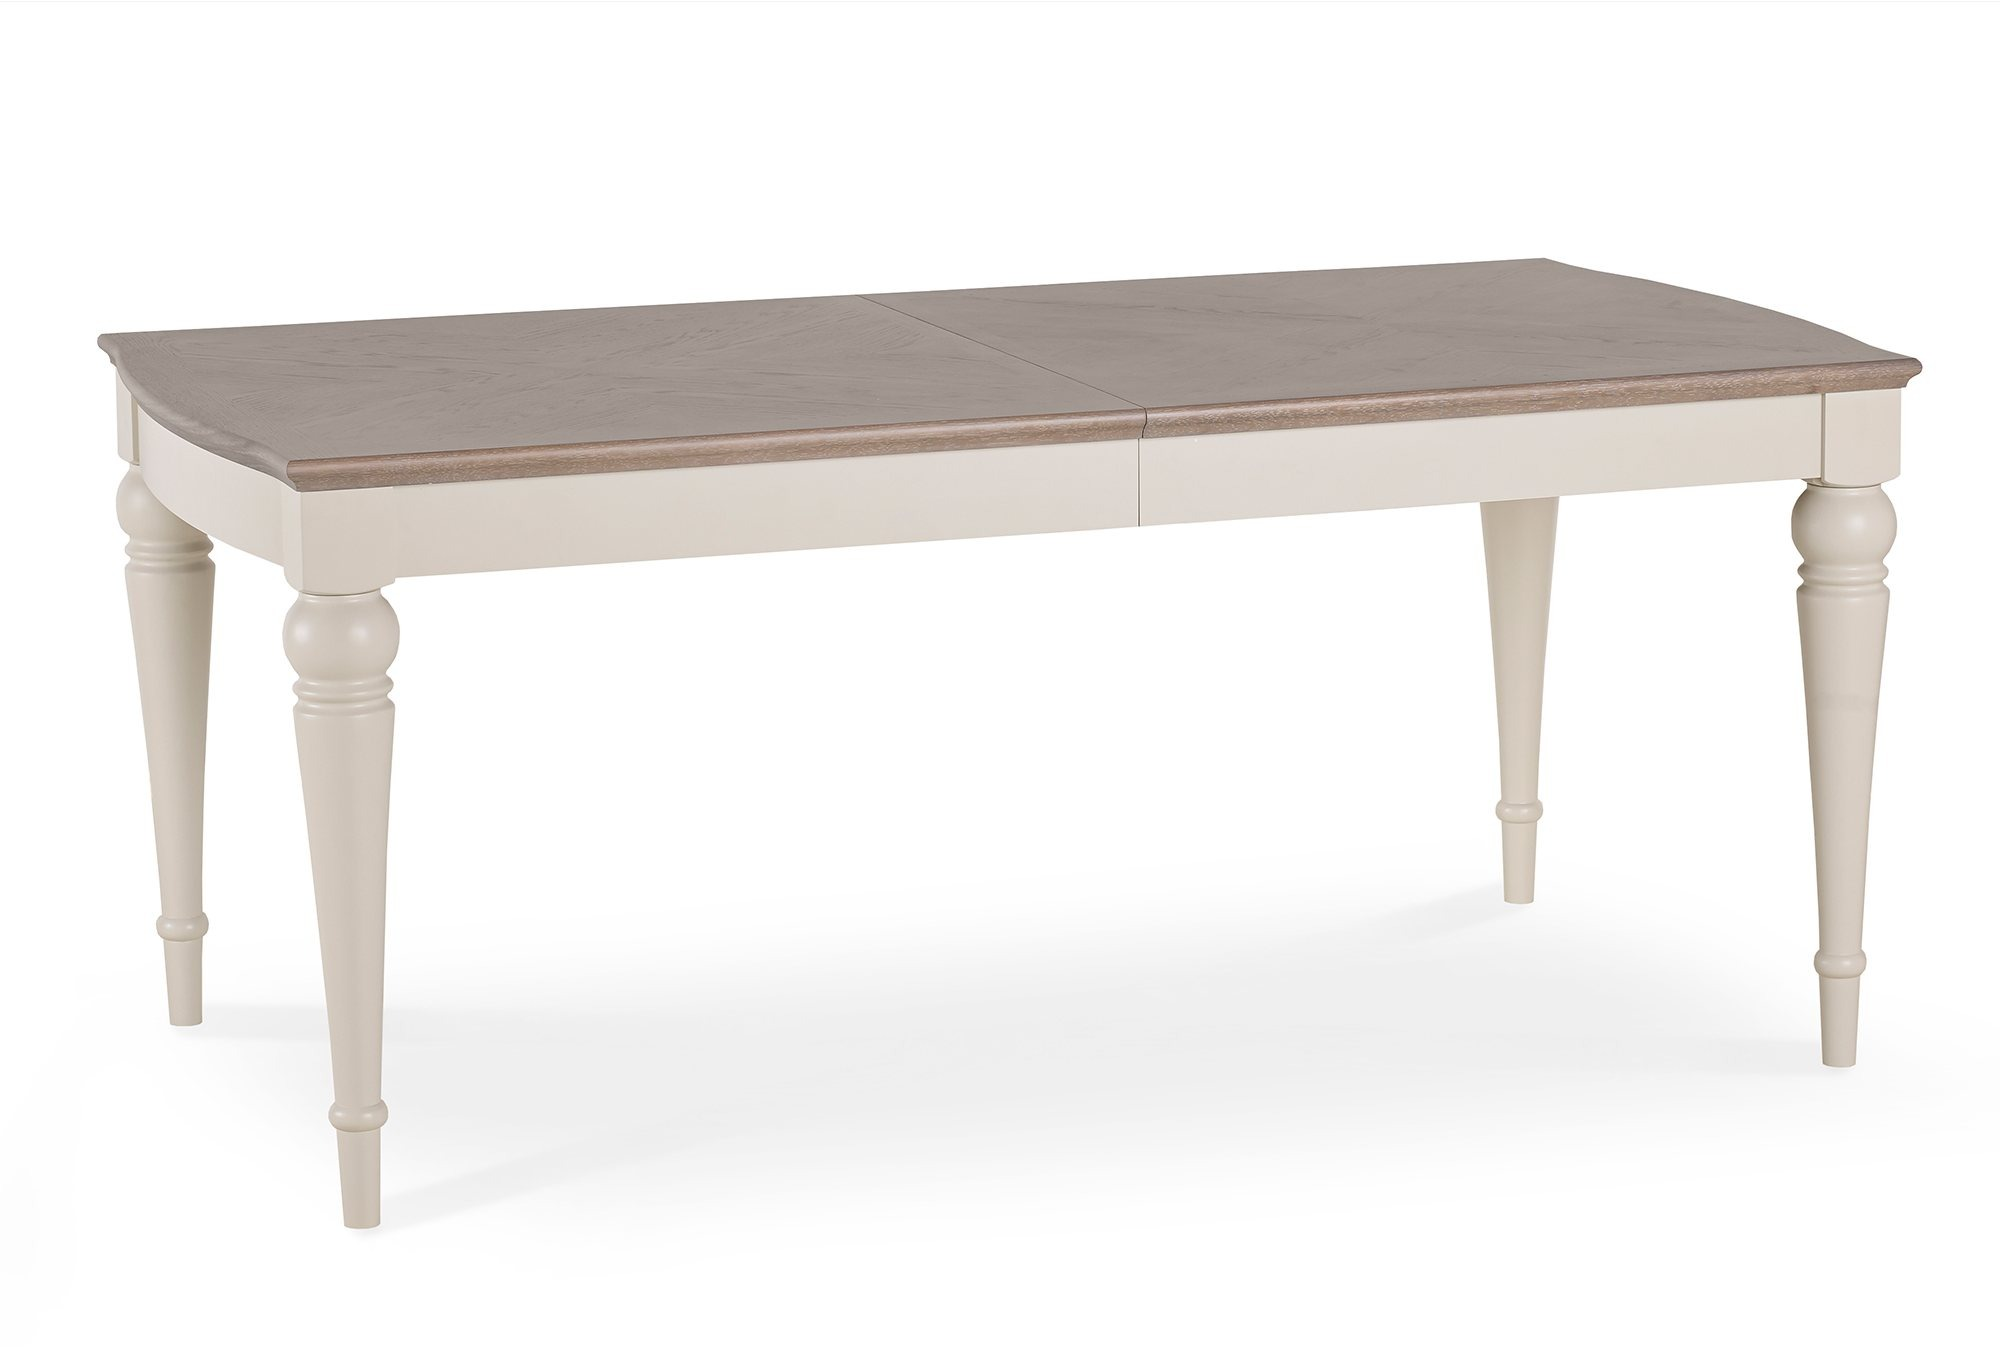 MONICA GREY DINING TABLE CLOSED - L180cm x D95cm x H77cm